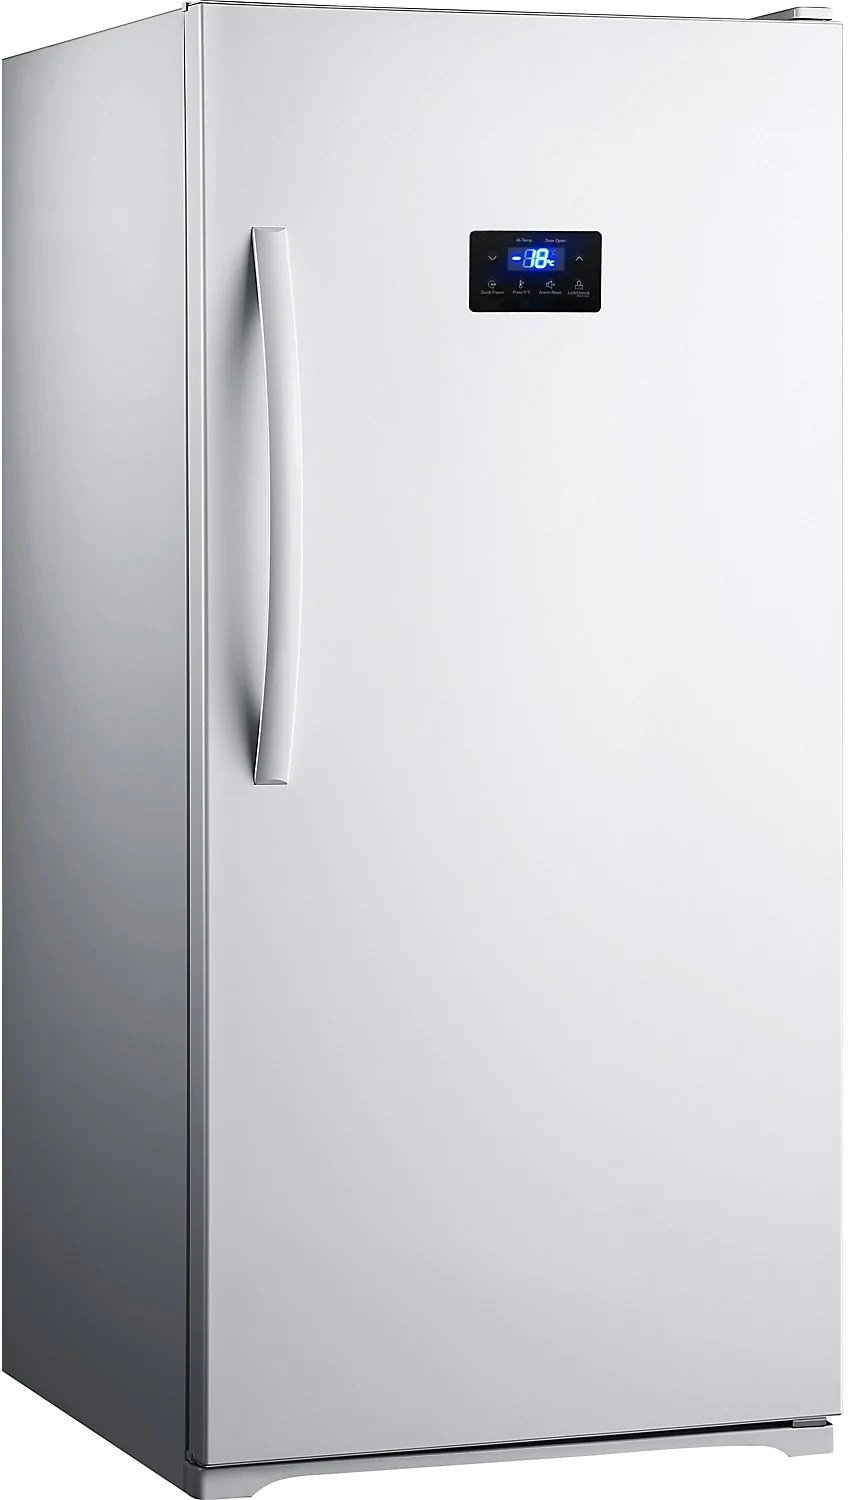 No Frost Midea 13 8 Cu Ft No Frost Upright Freezer White